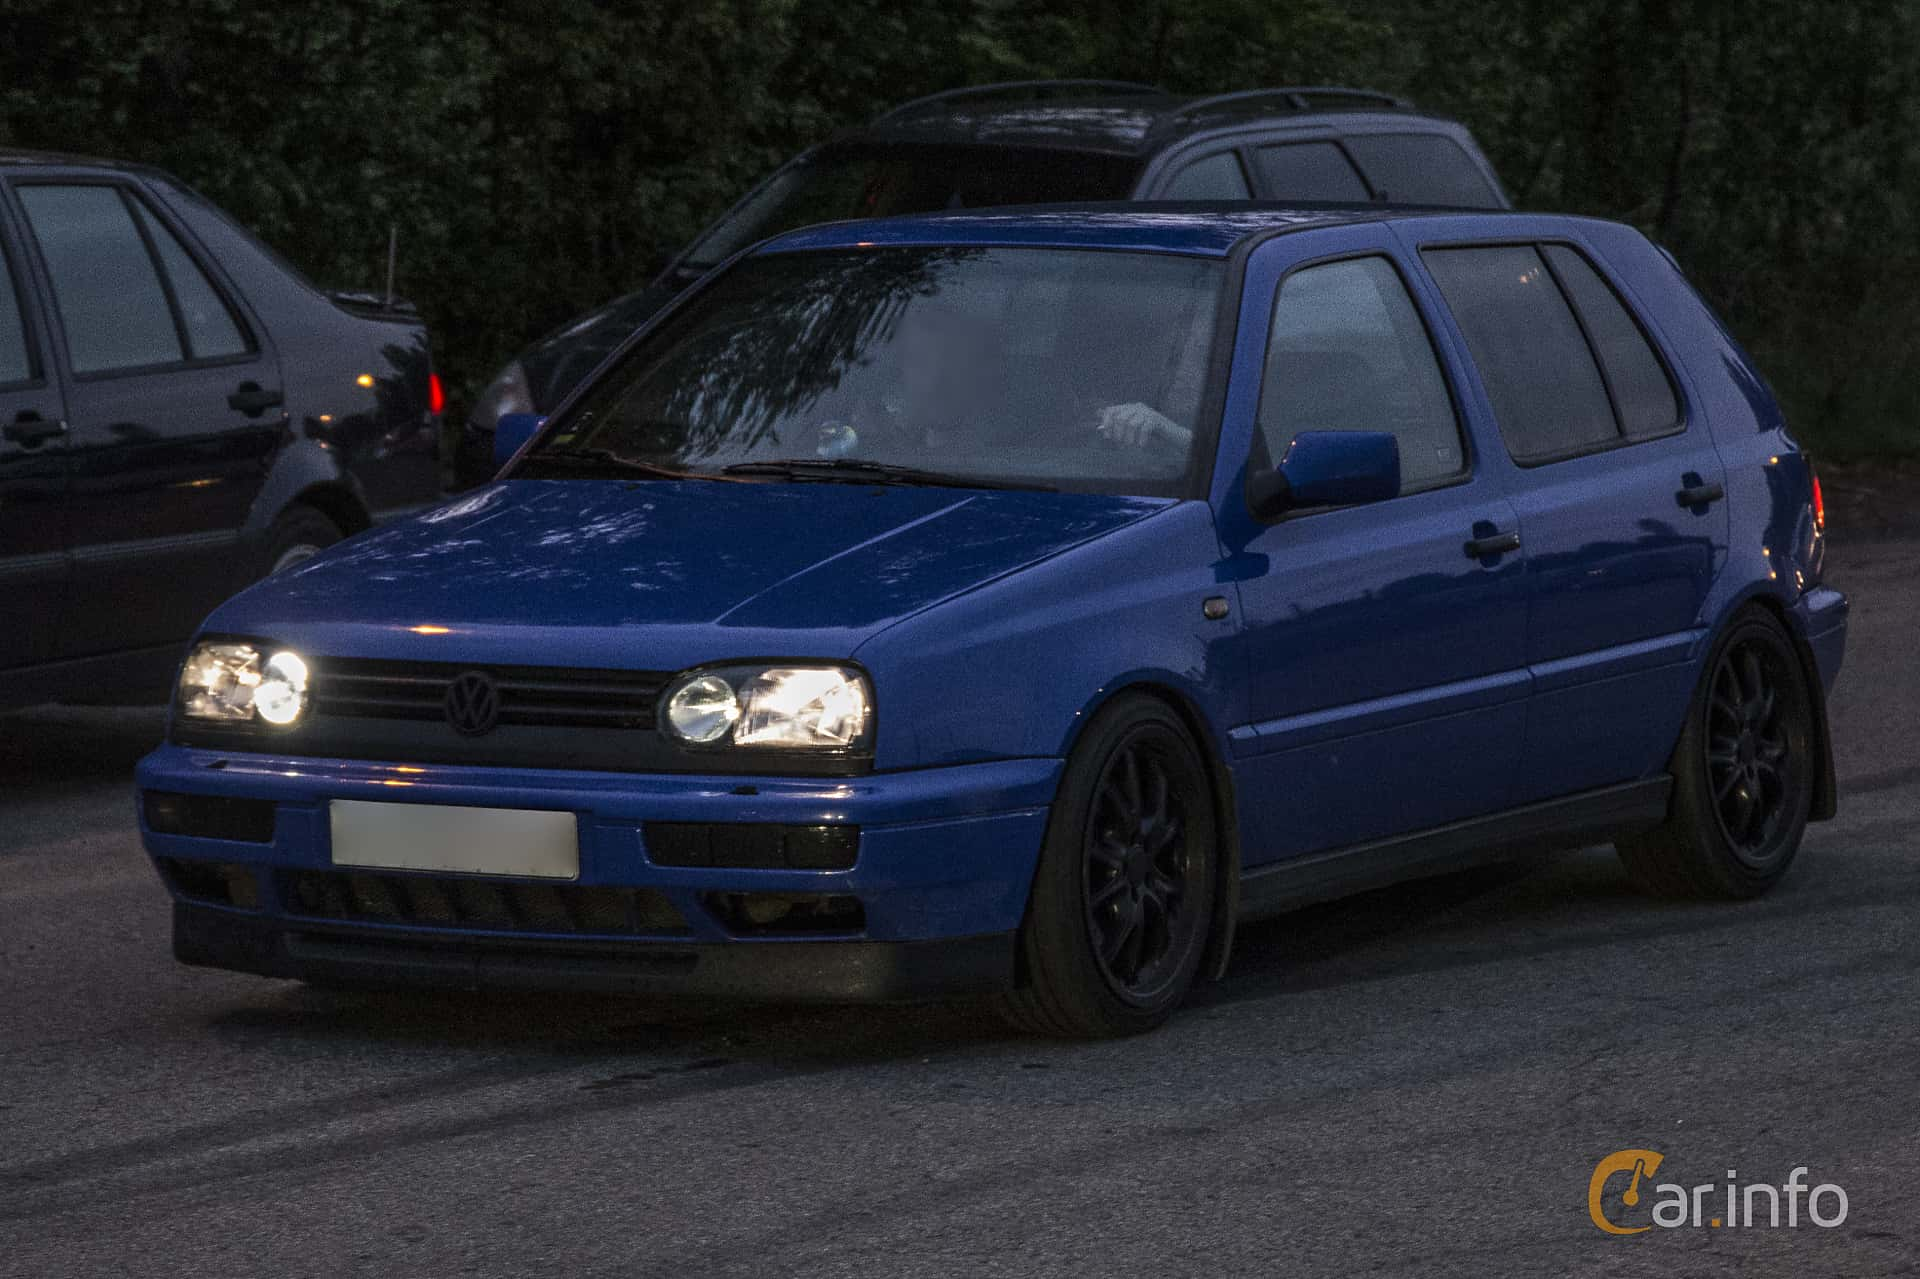 Front/Side of Volkswagen Golf 5-door 2.9 VR6 syncro Manual, 190ps,